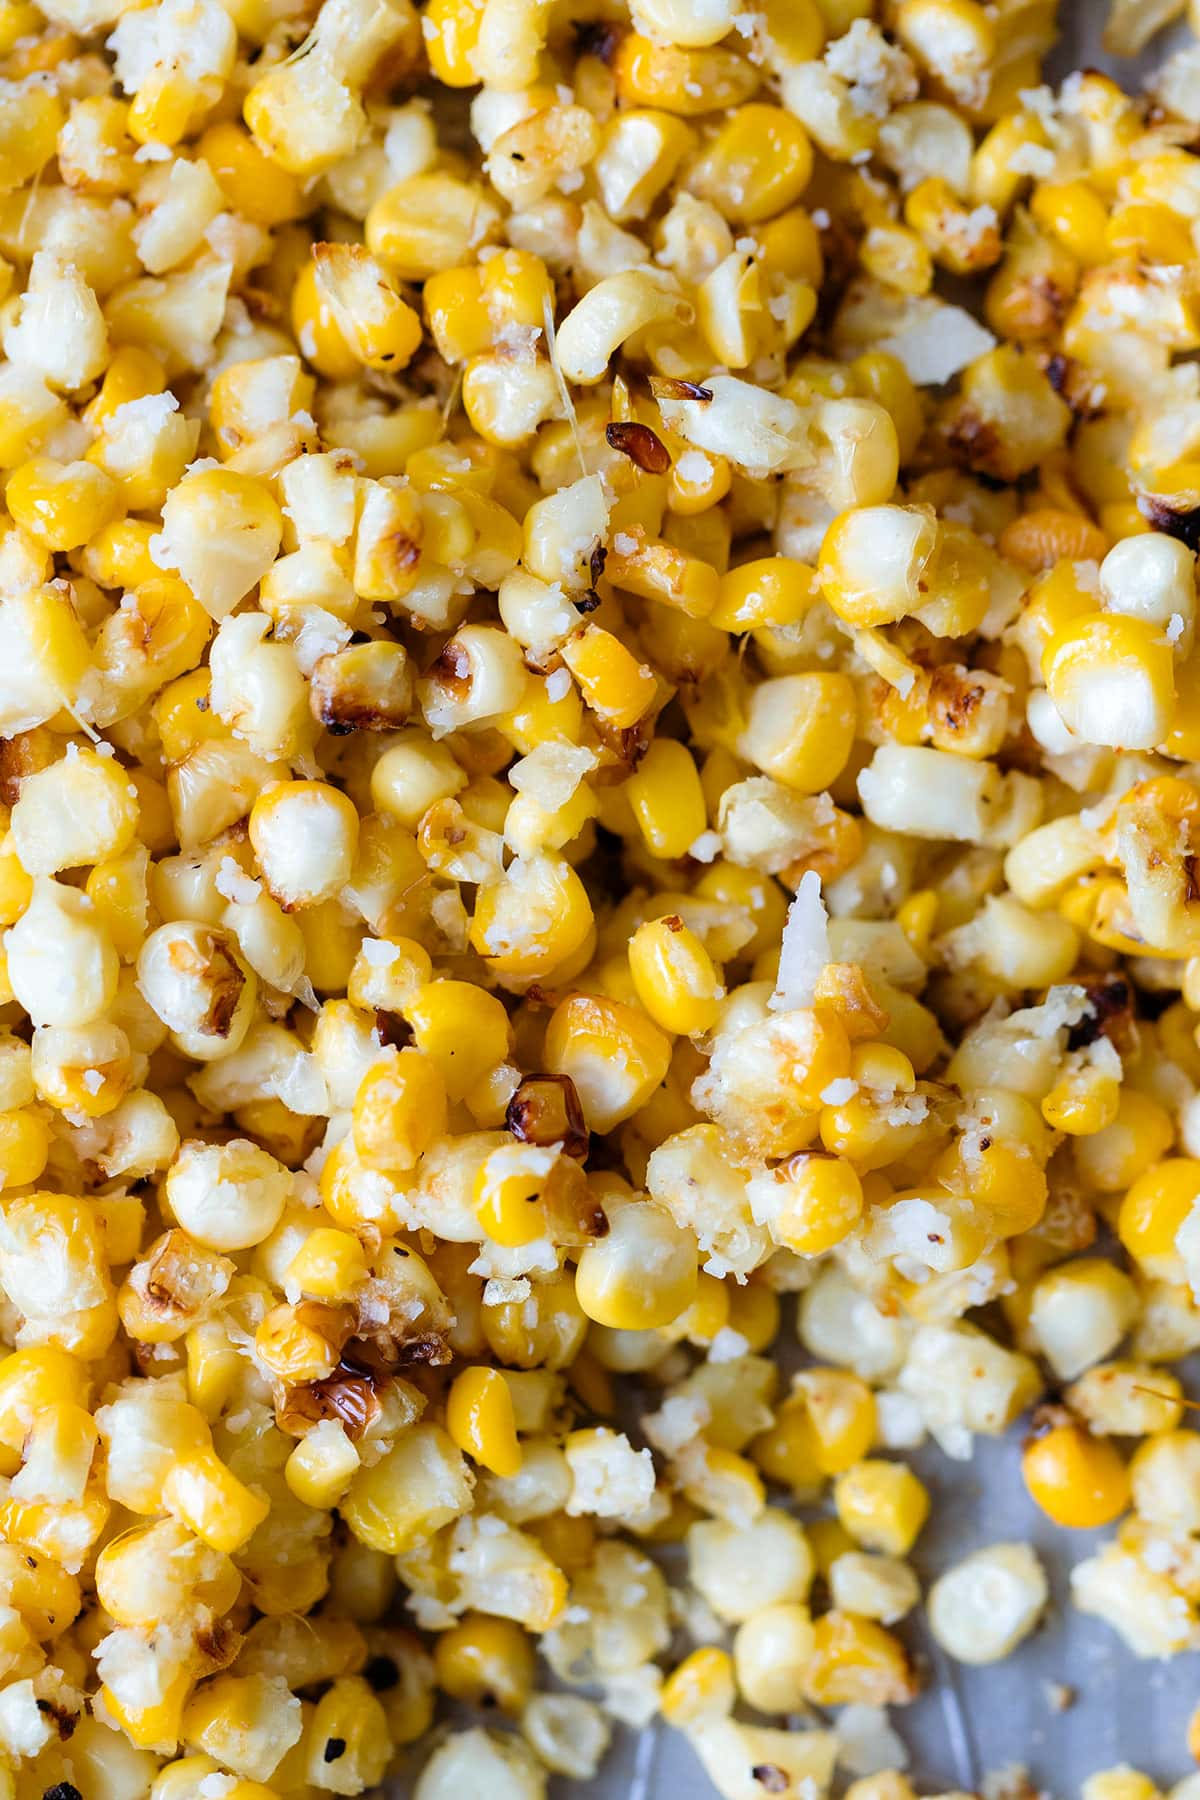 A close up of roasted corn kernels on a baking sheet, sprinkled with pecorino cheese